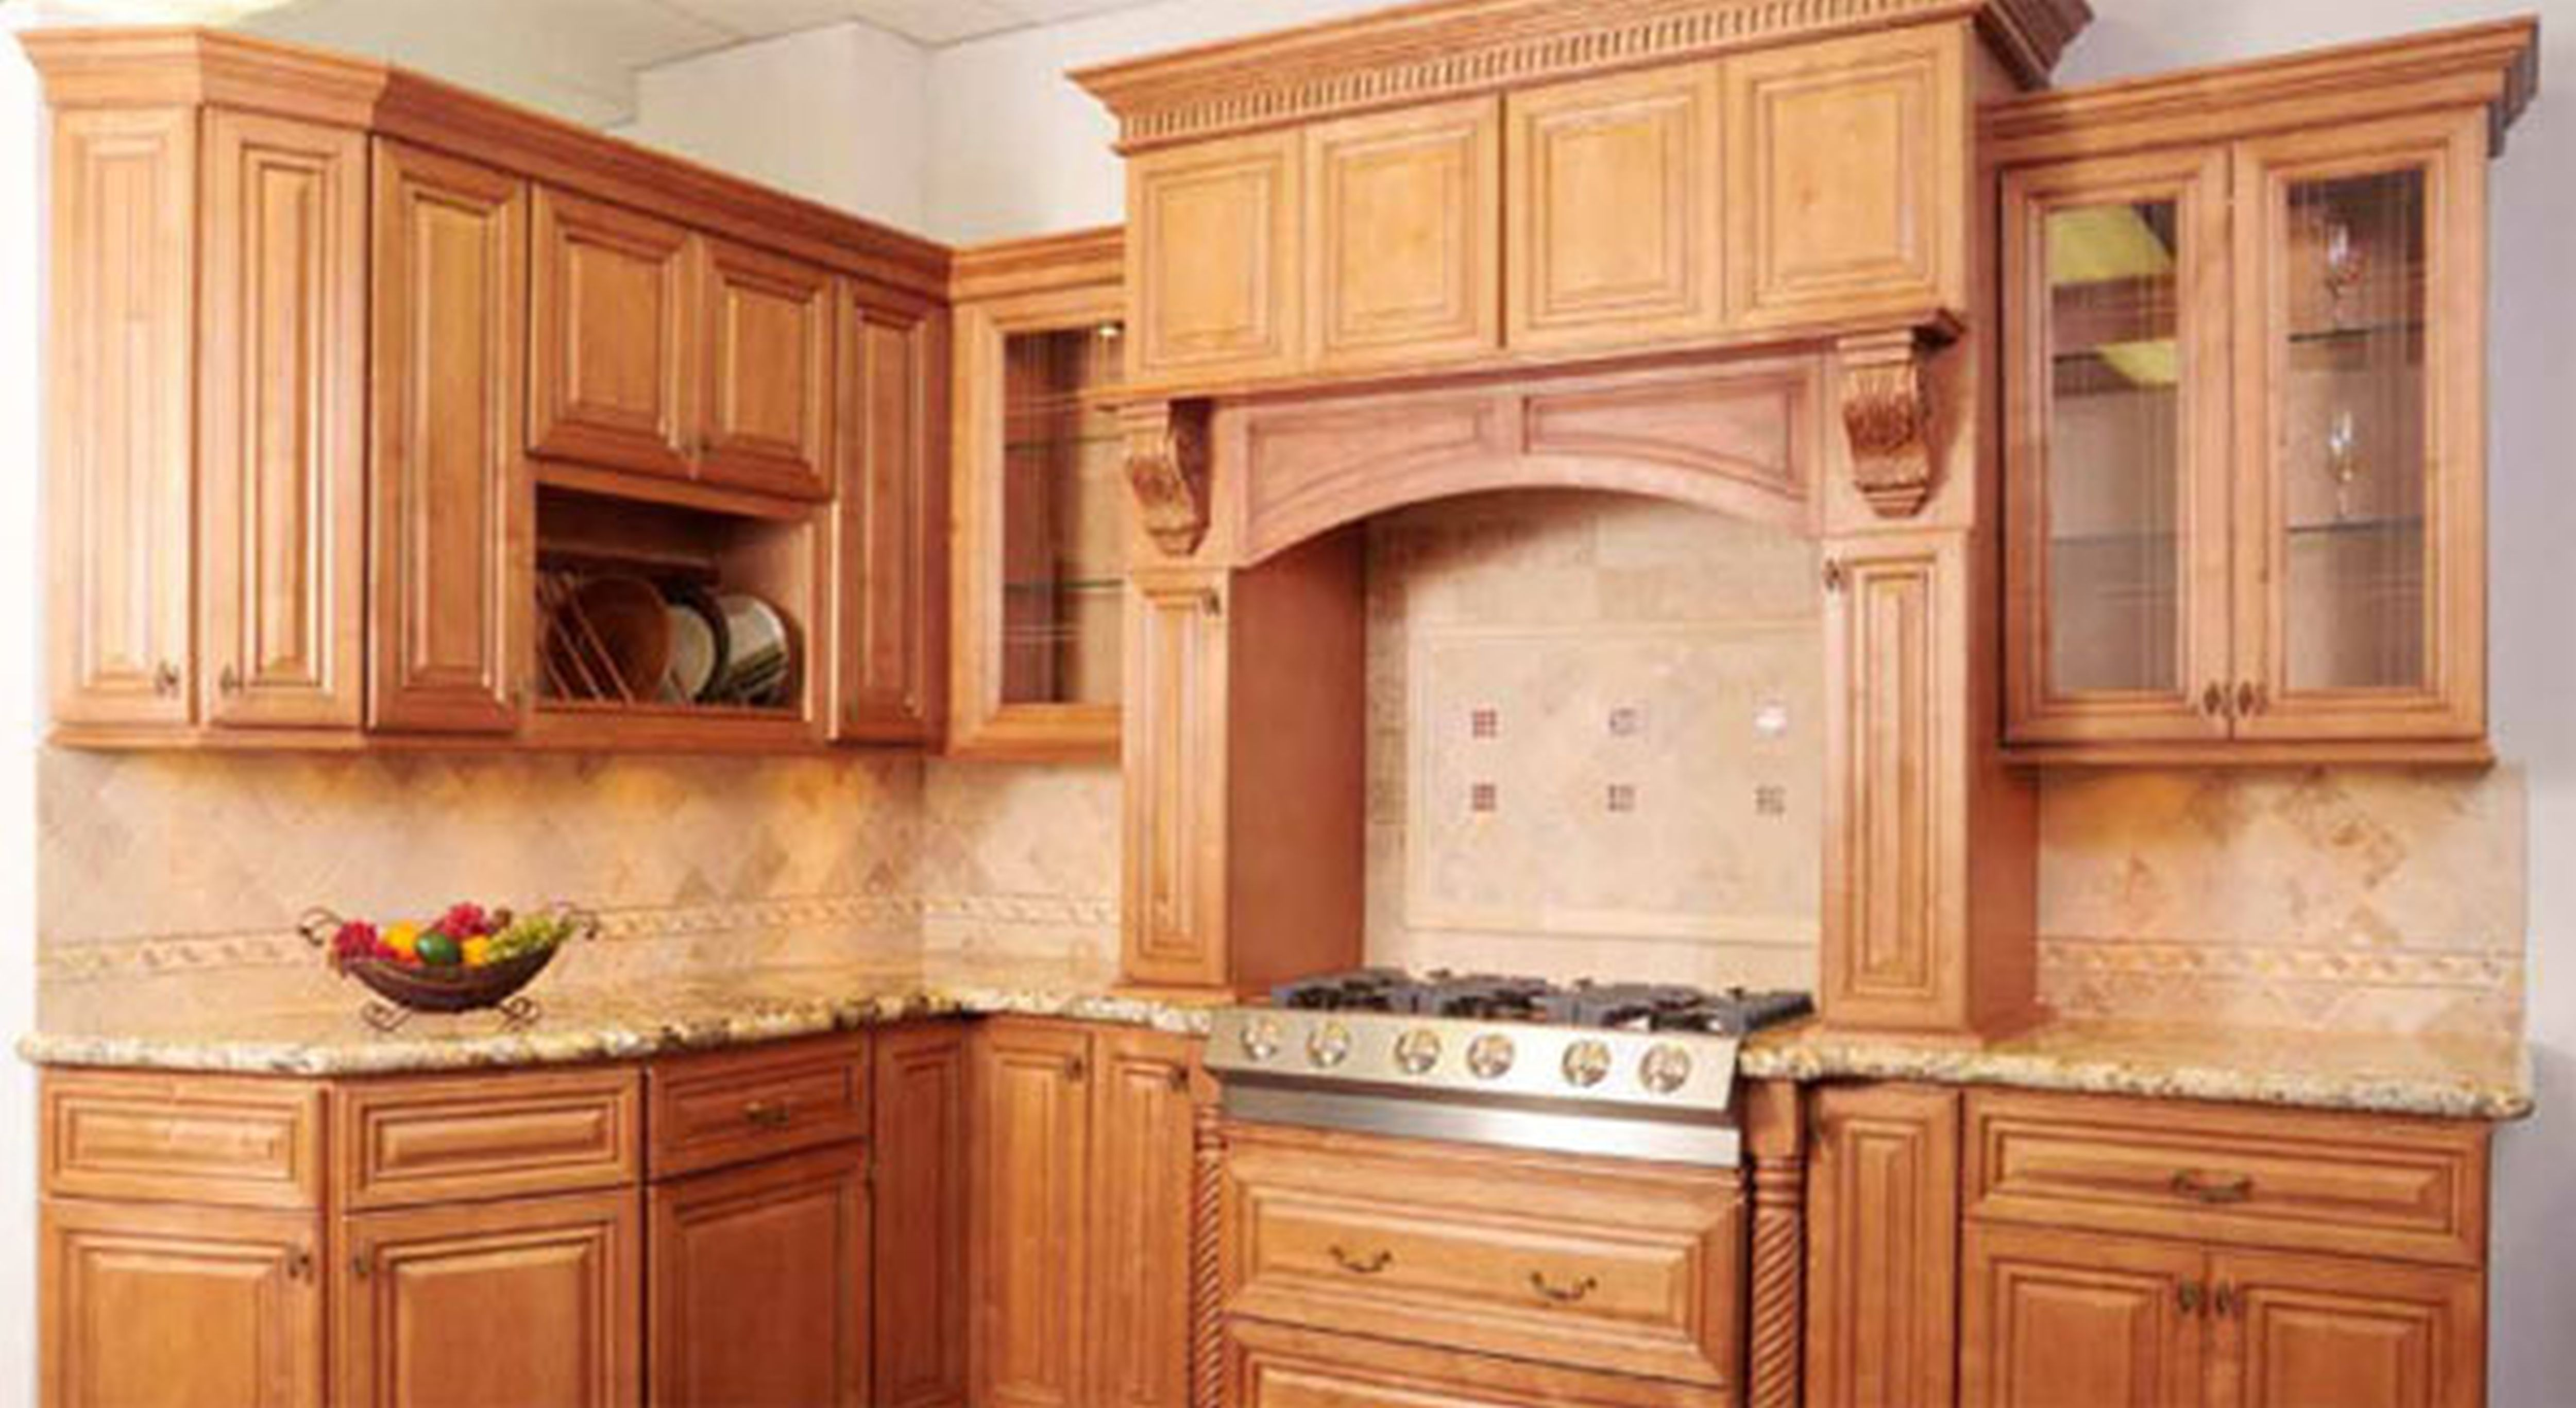 Custom kitchen american woodmark cabinets with granite countertop and stove for kitchen decor ideas